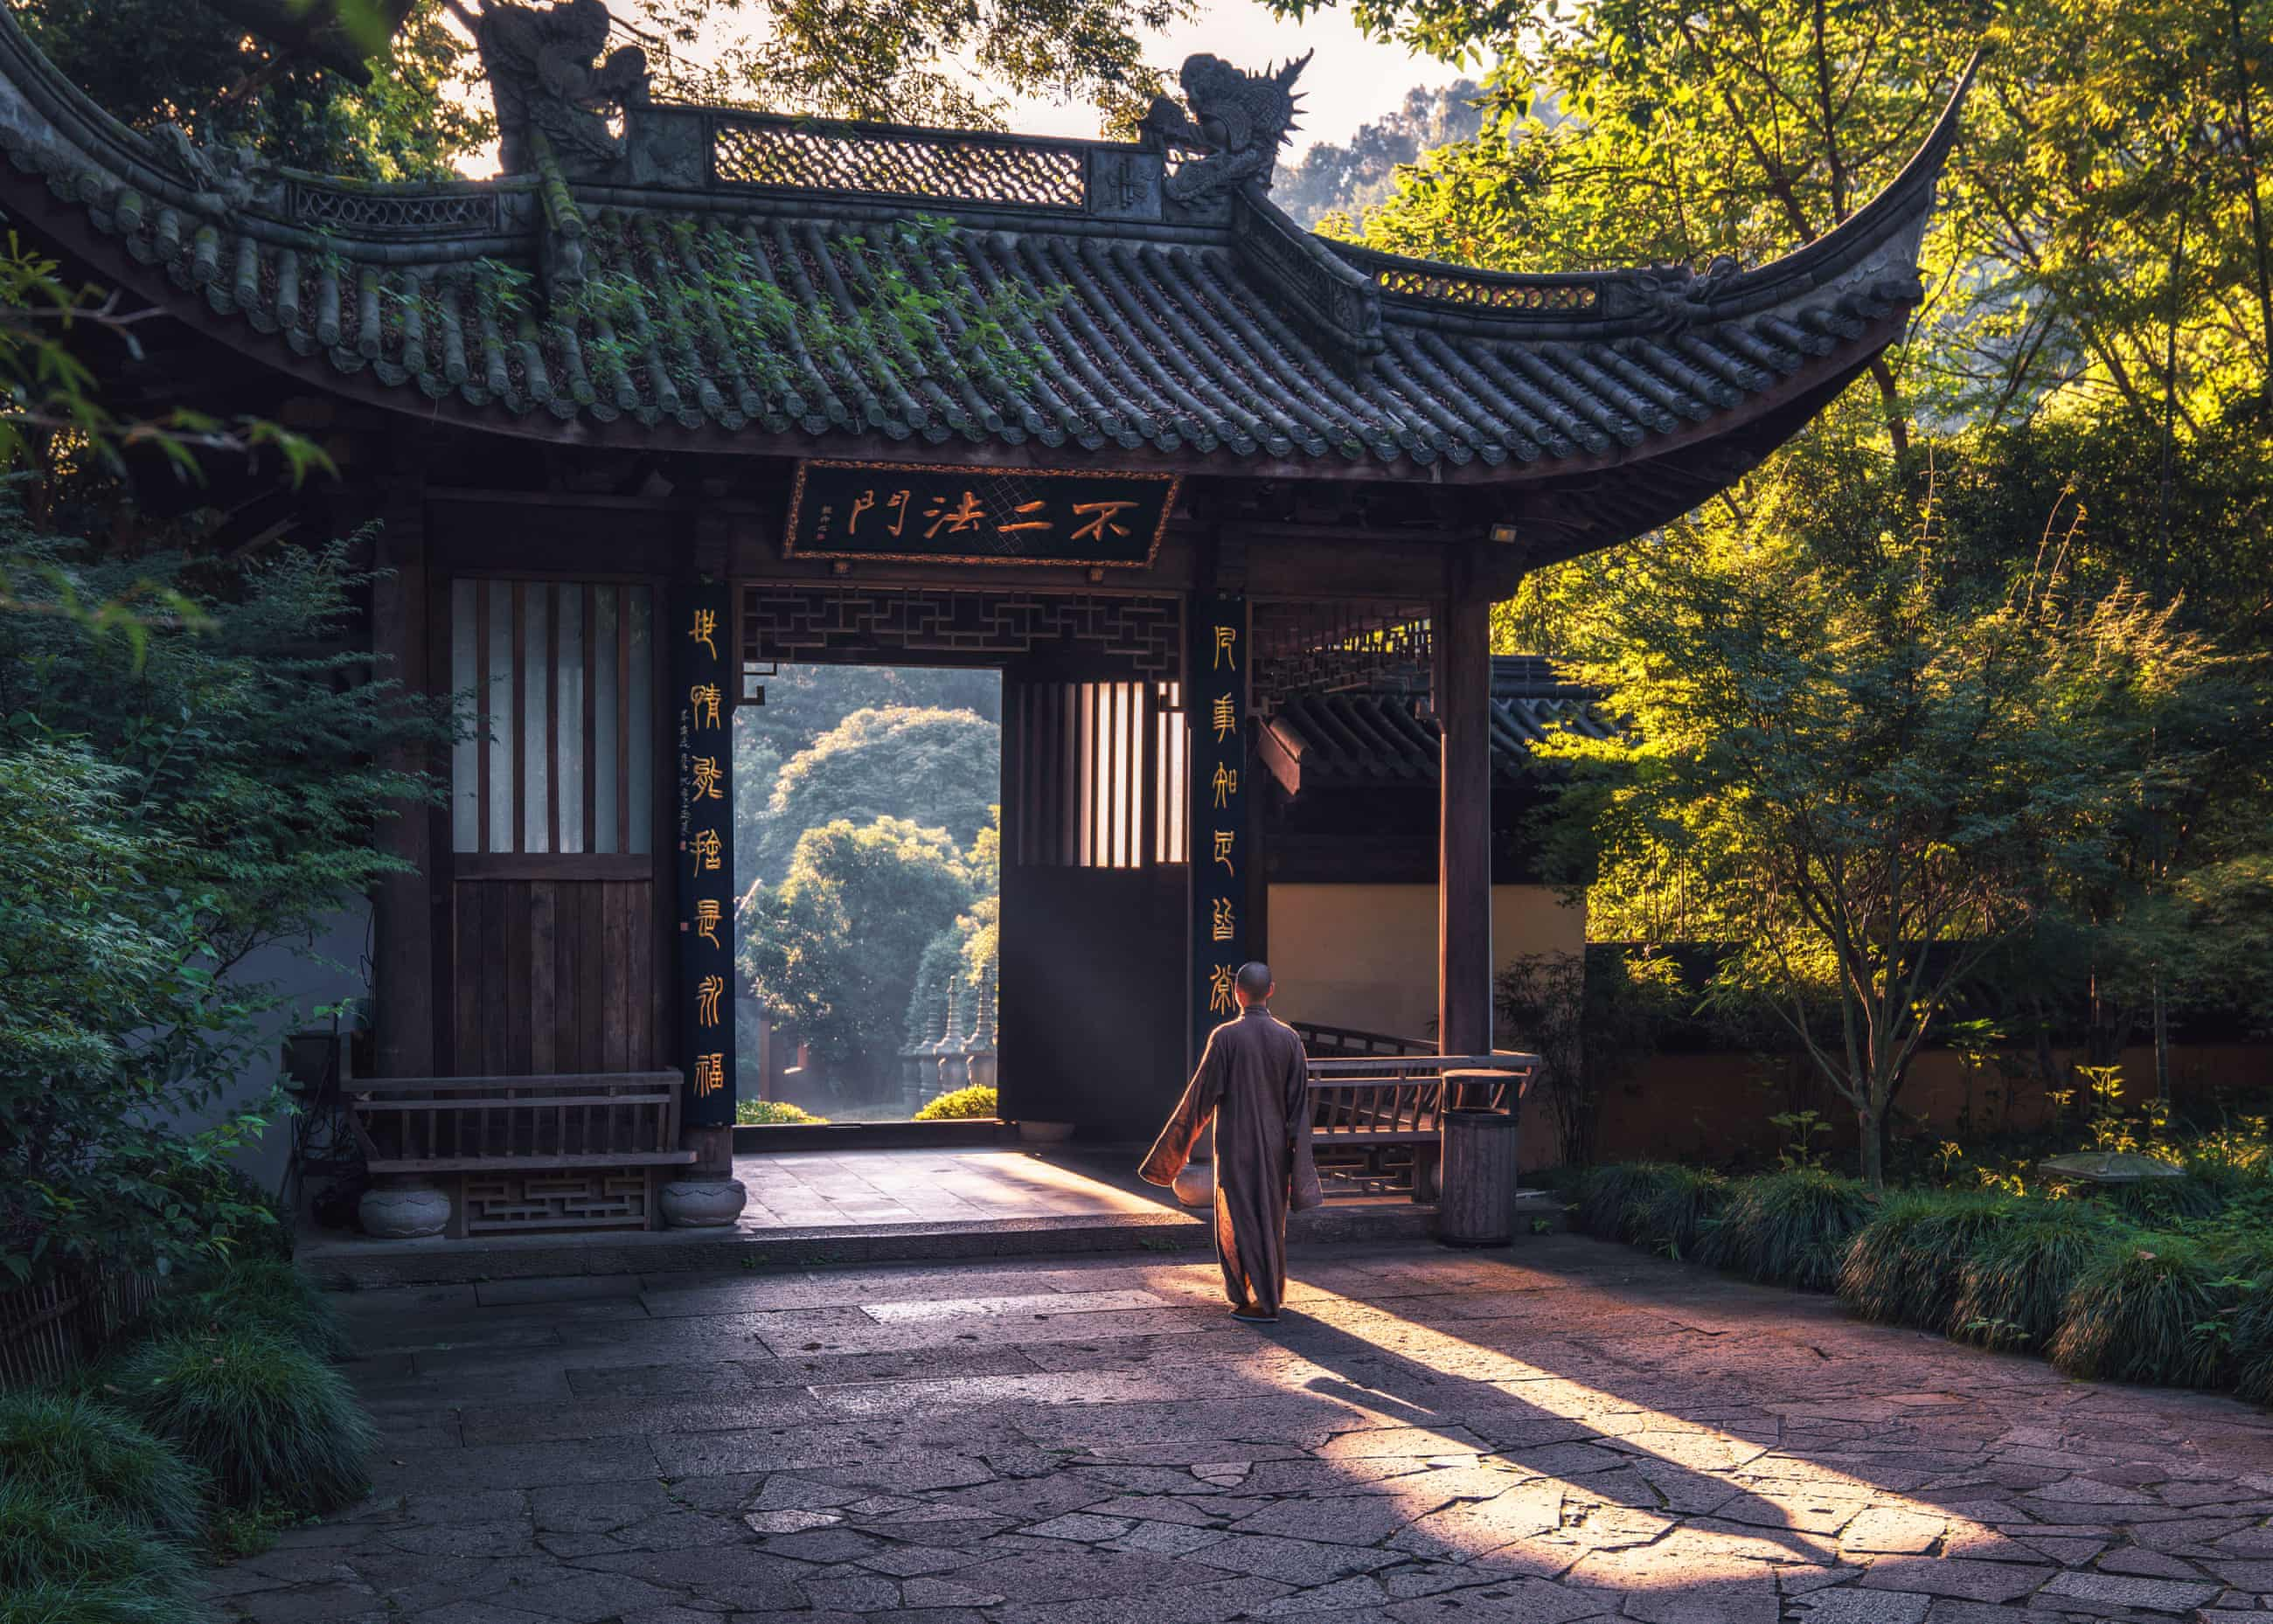 Welcome to Hangzhou: 'the finest and most splendid city in the world'